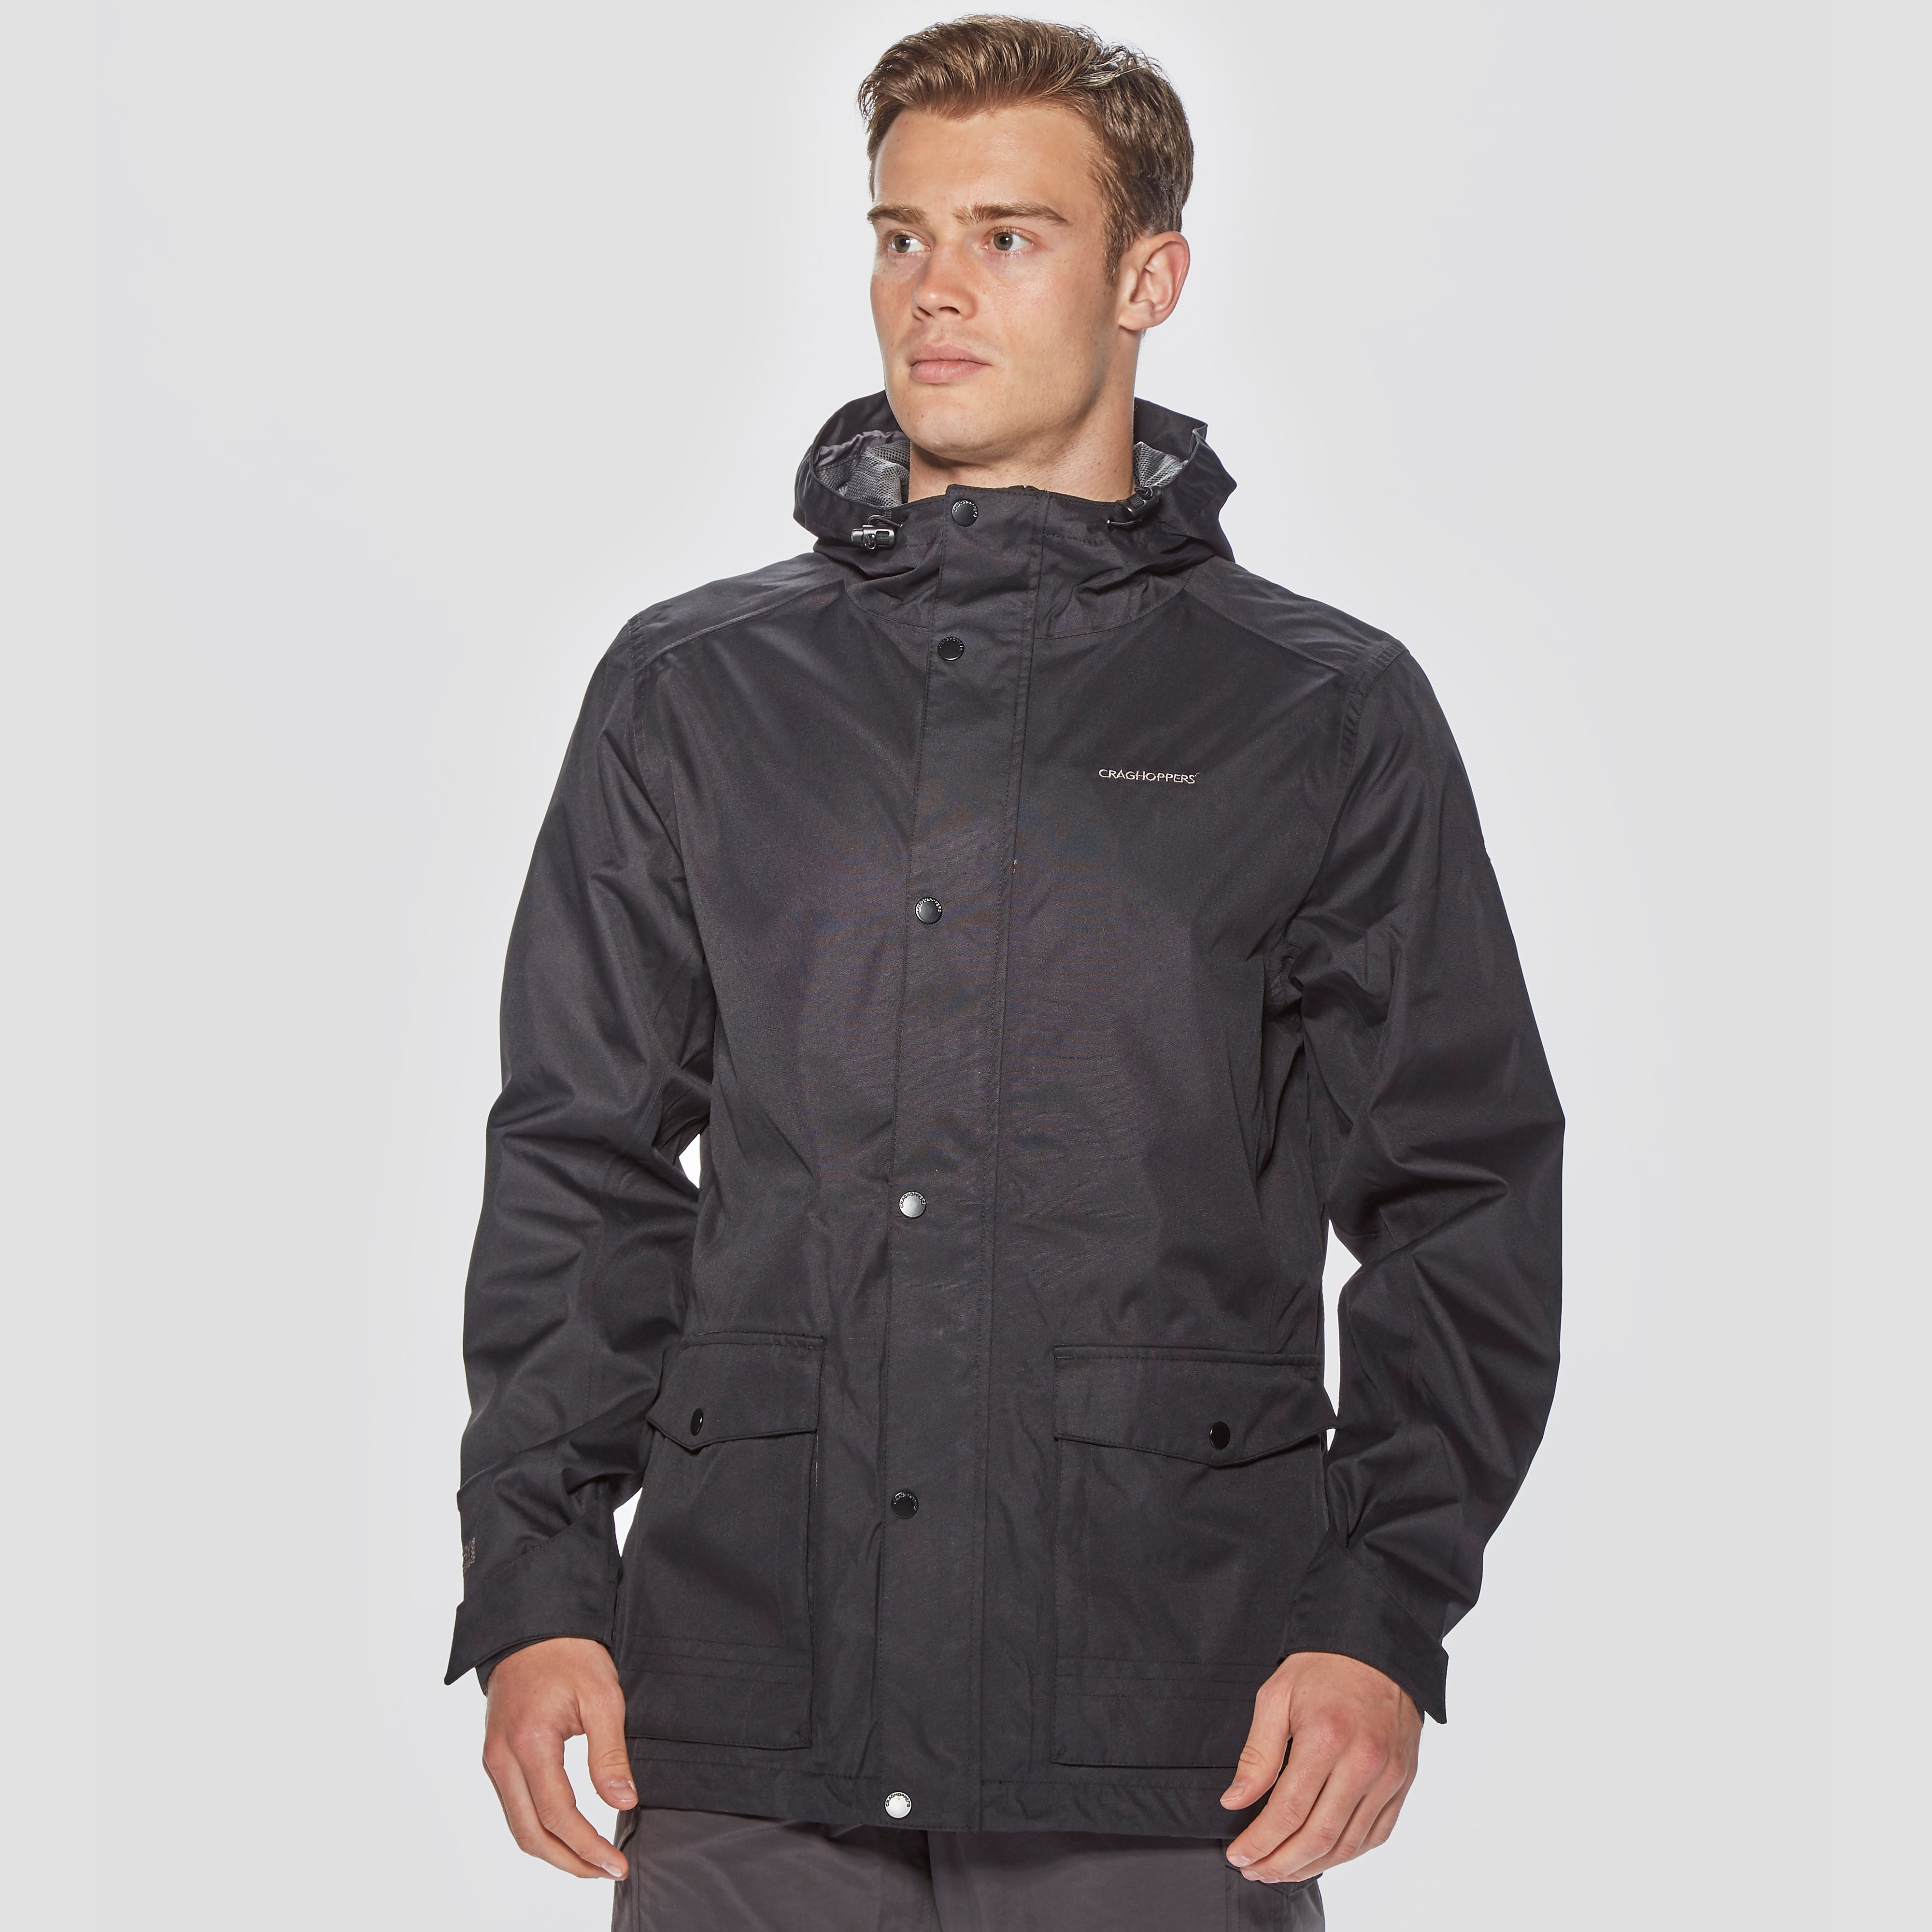 Craghoppers Kiwi Men's Jacket